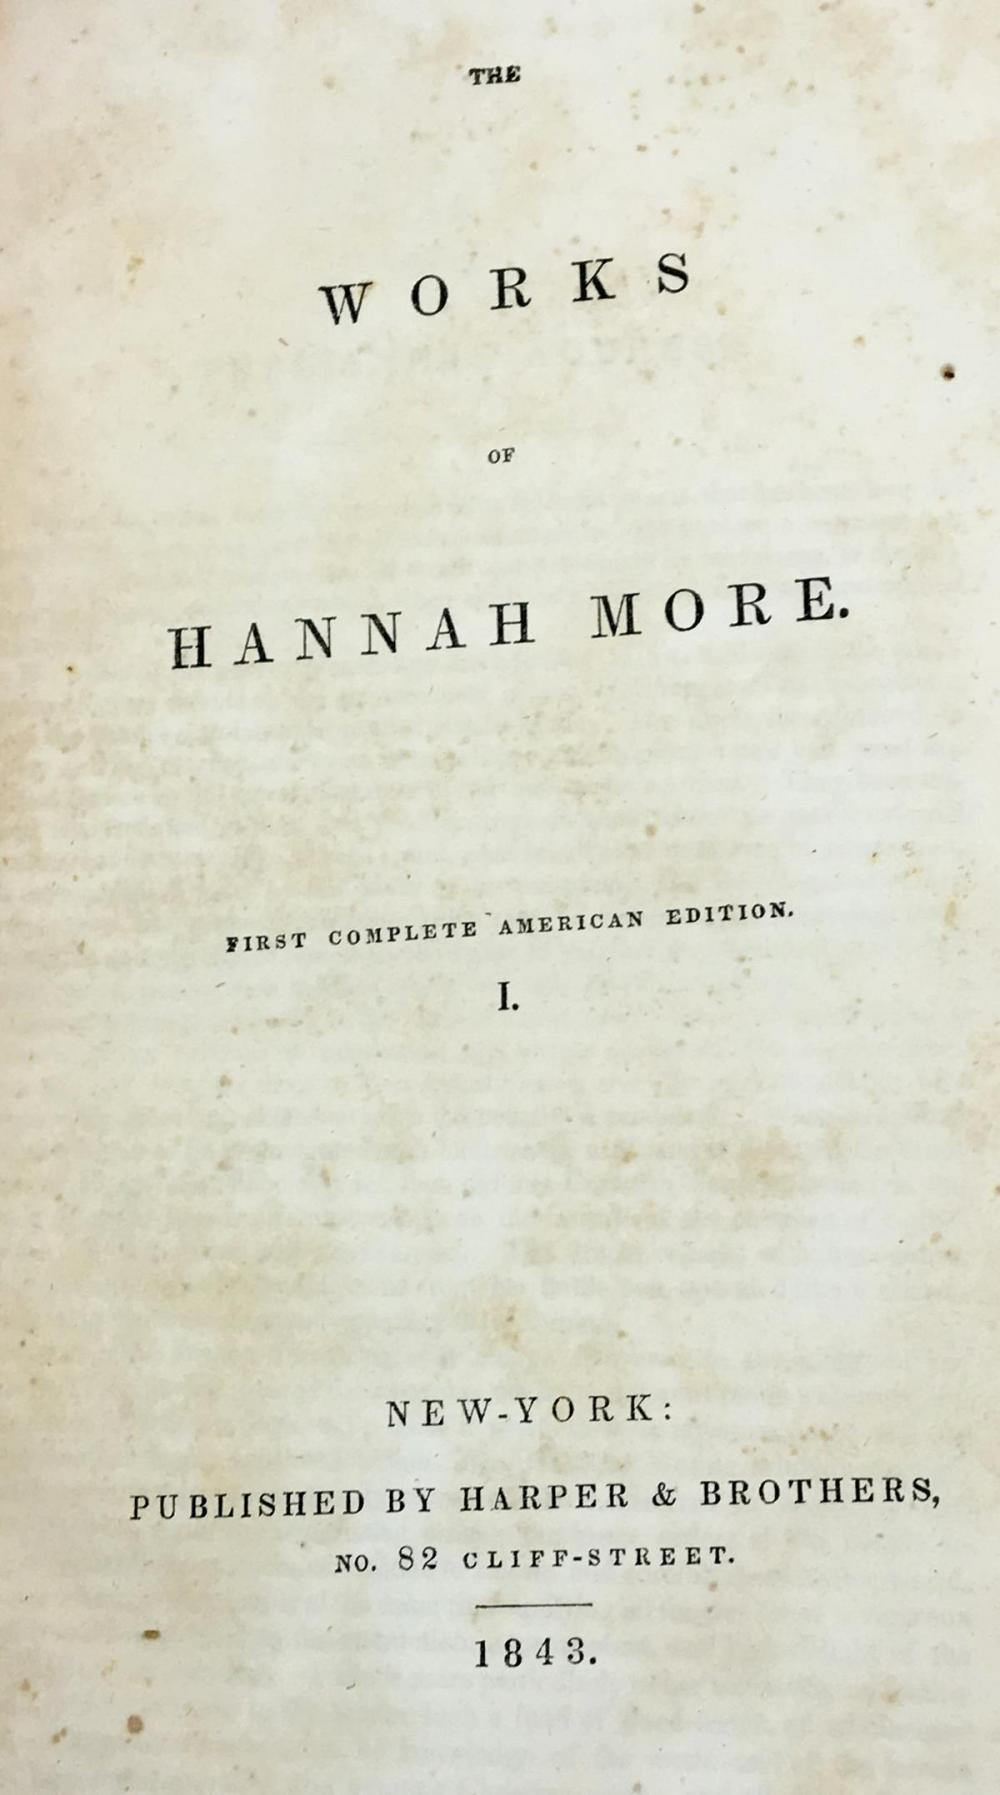 1843 The Works Of Hannah More First Complete American Edition Vol. 1